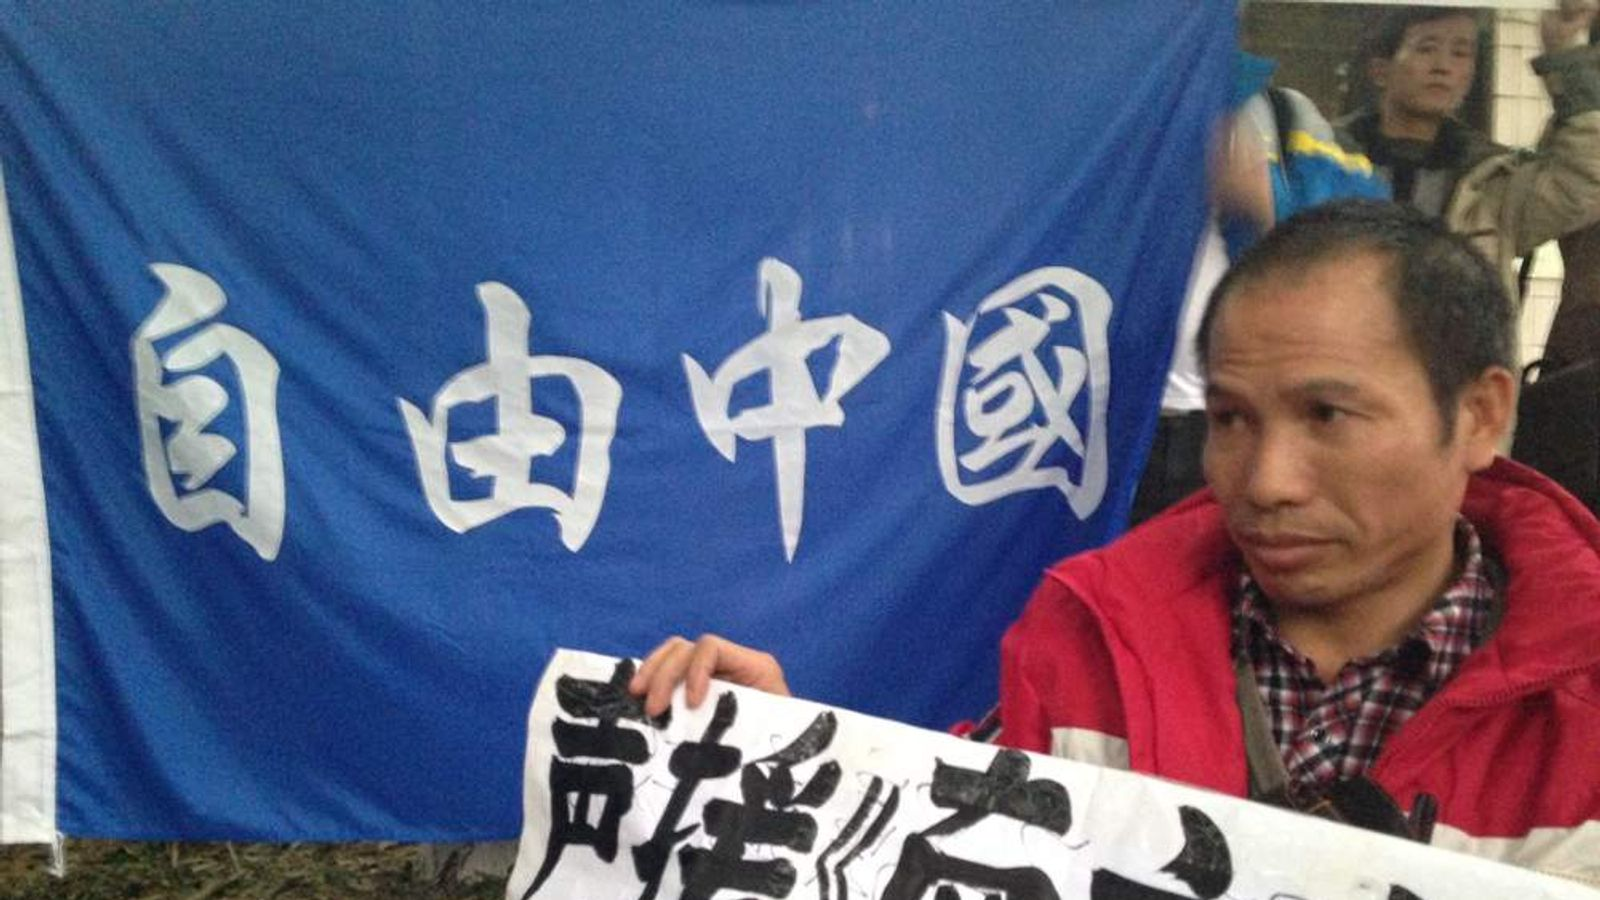 More than 100 journalists at one of China's most respected newspapers have gone on strike in a rare protest against censorship.